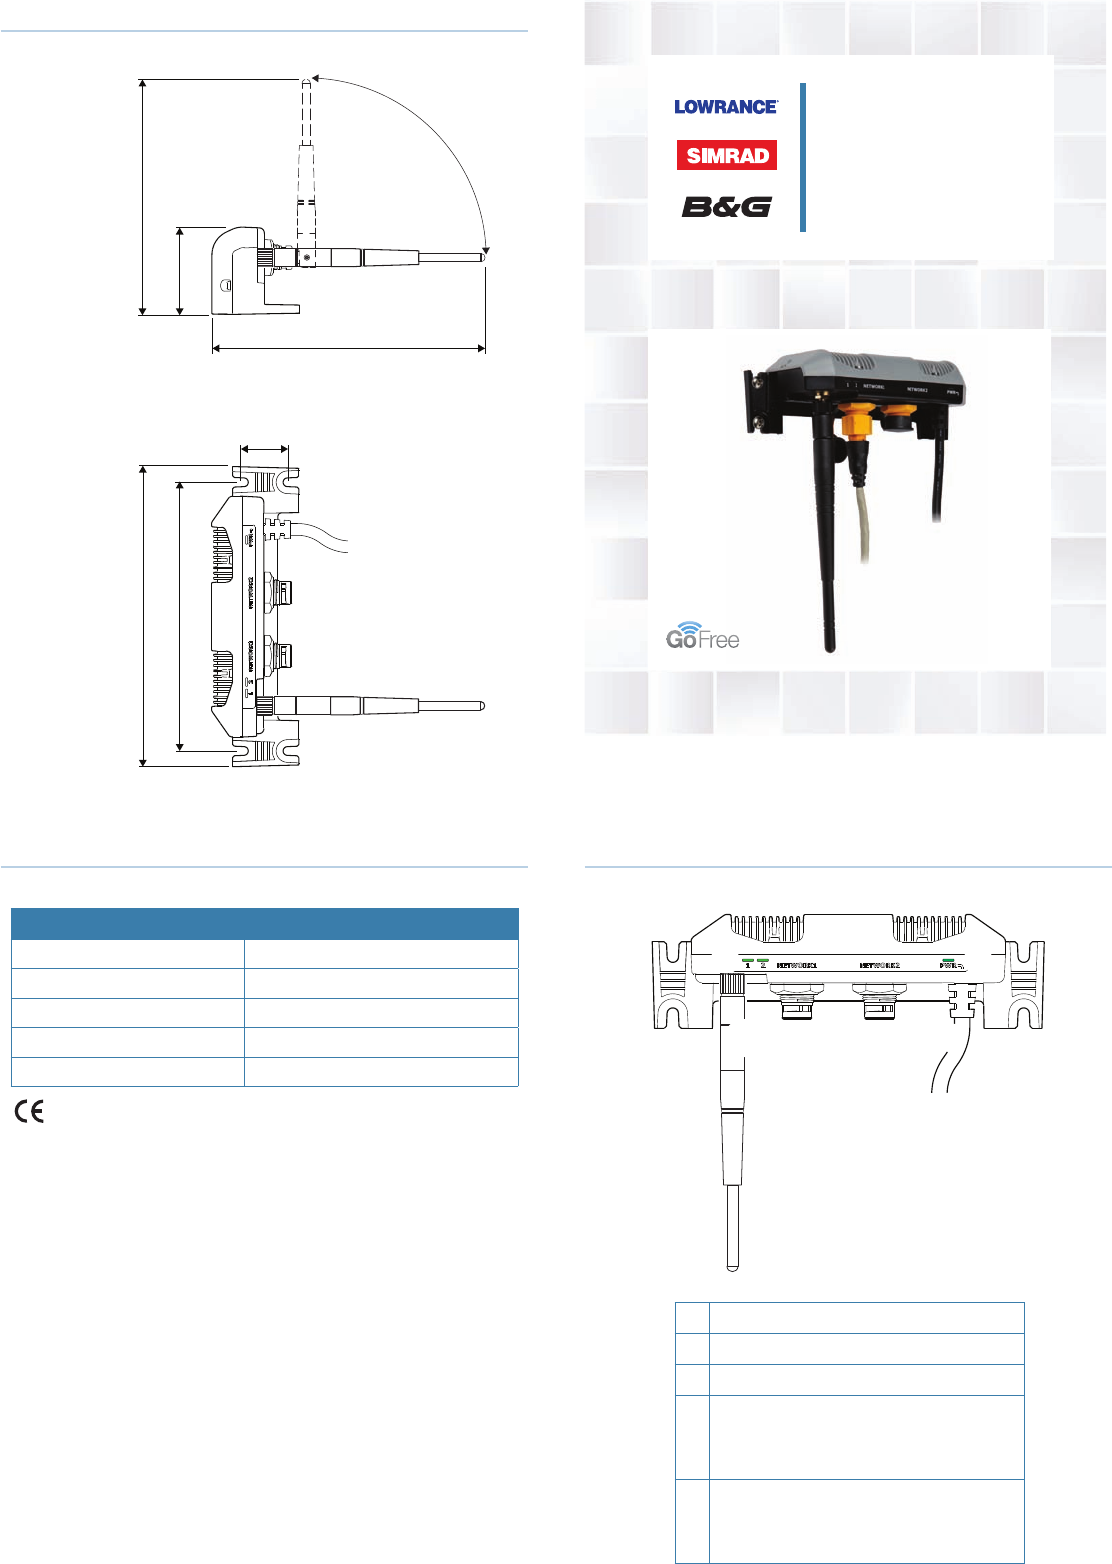 Navico Auckland GOFREEWIFI WIFI Router User Manual